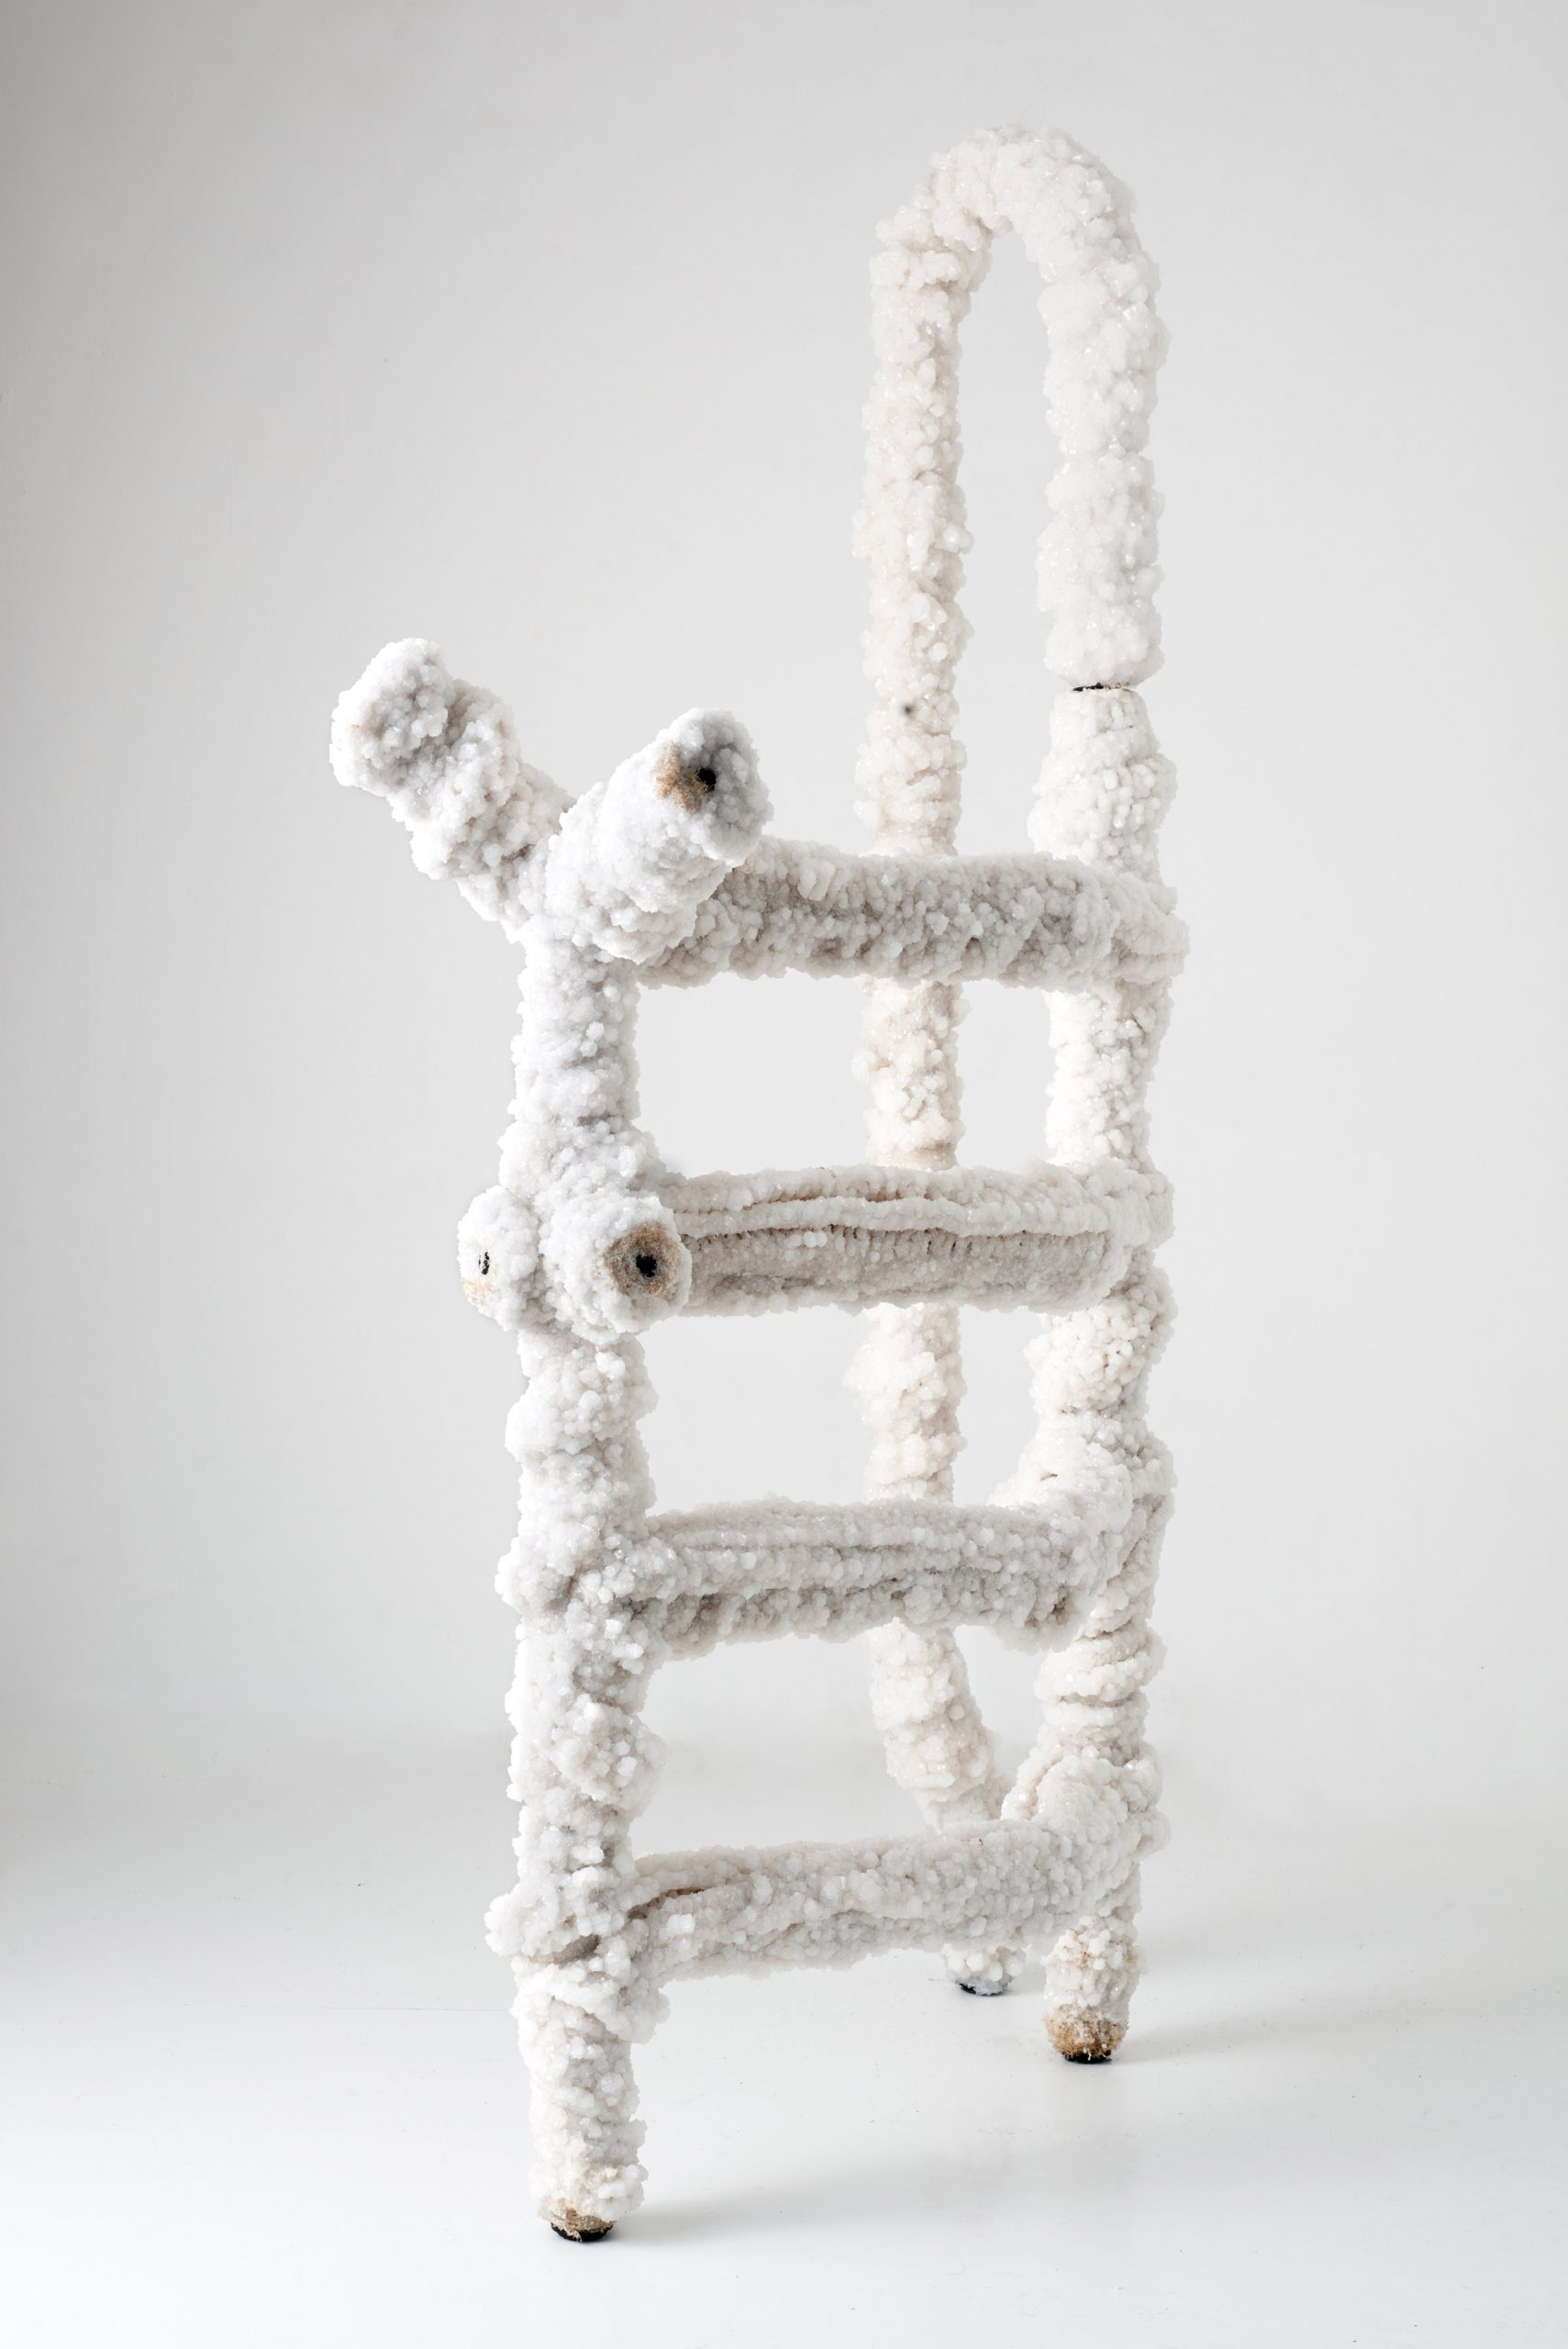 A ladder made from salt crystals